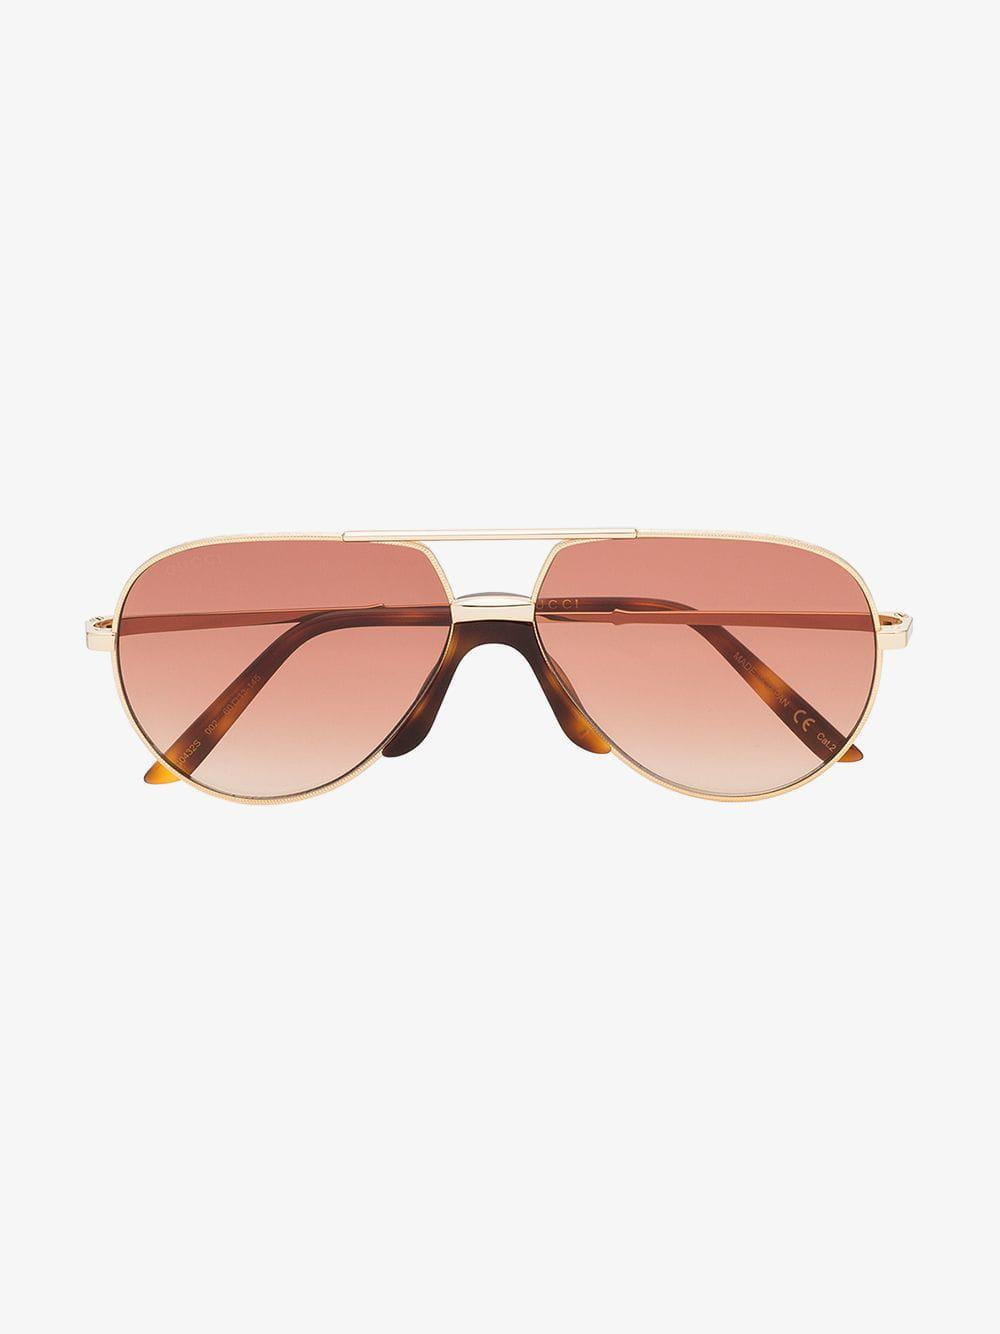 4f12c949eac7 Gucci Eyewear Gold GG0432S 002 Aviator Metal Sunglasses in Brown for Men -  Lyst